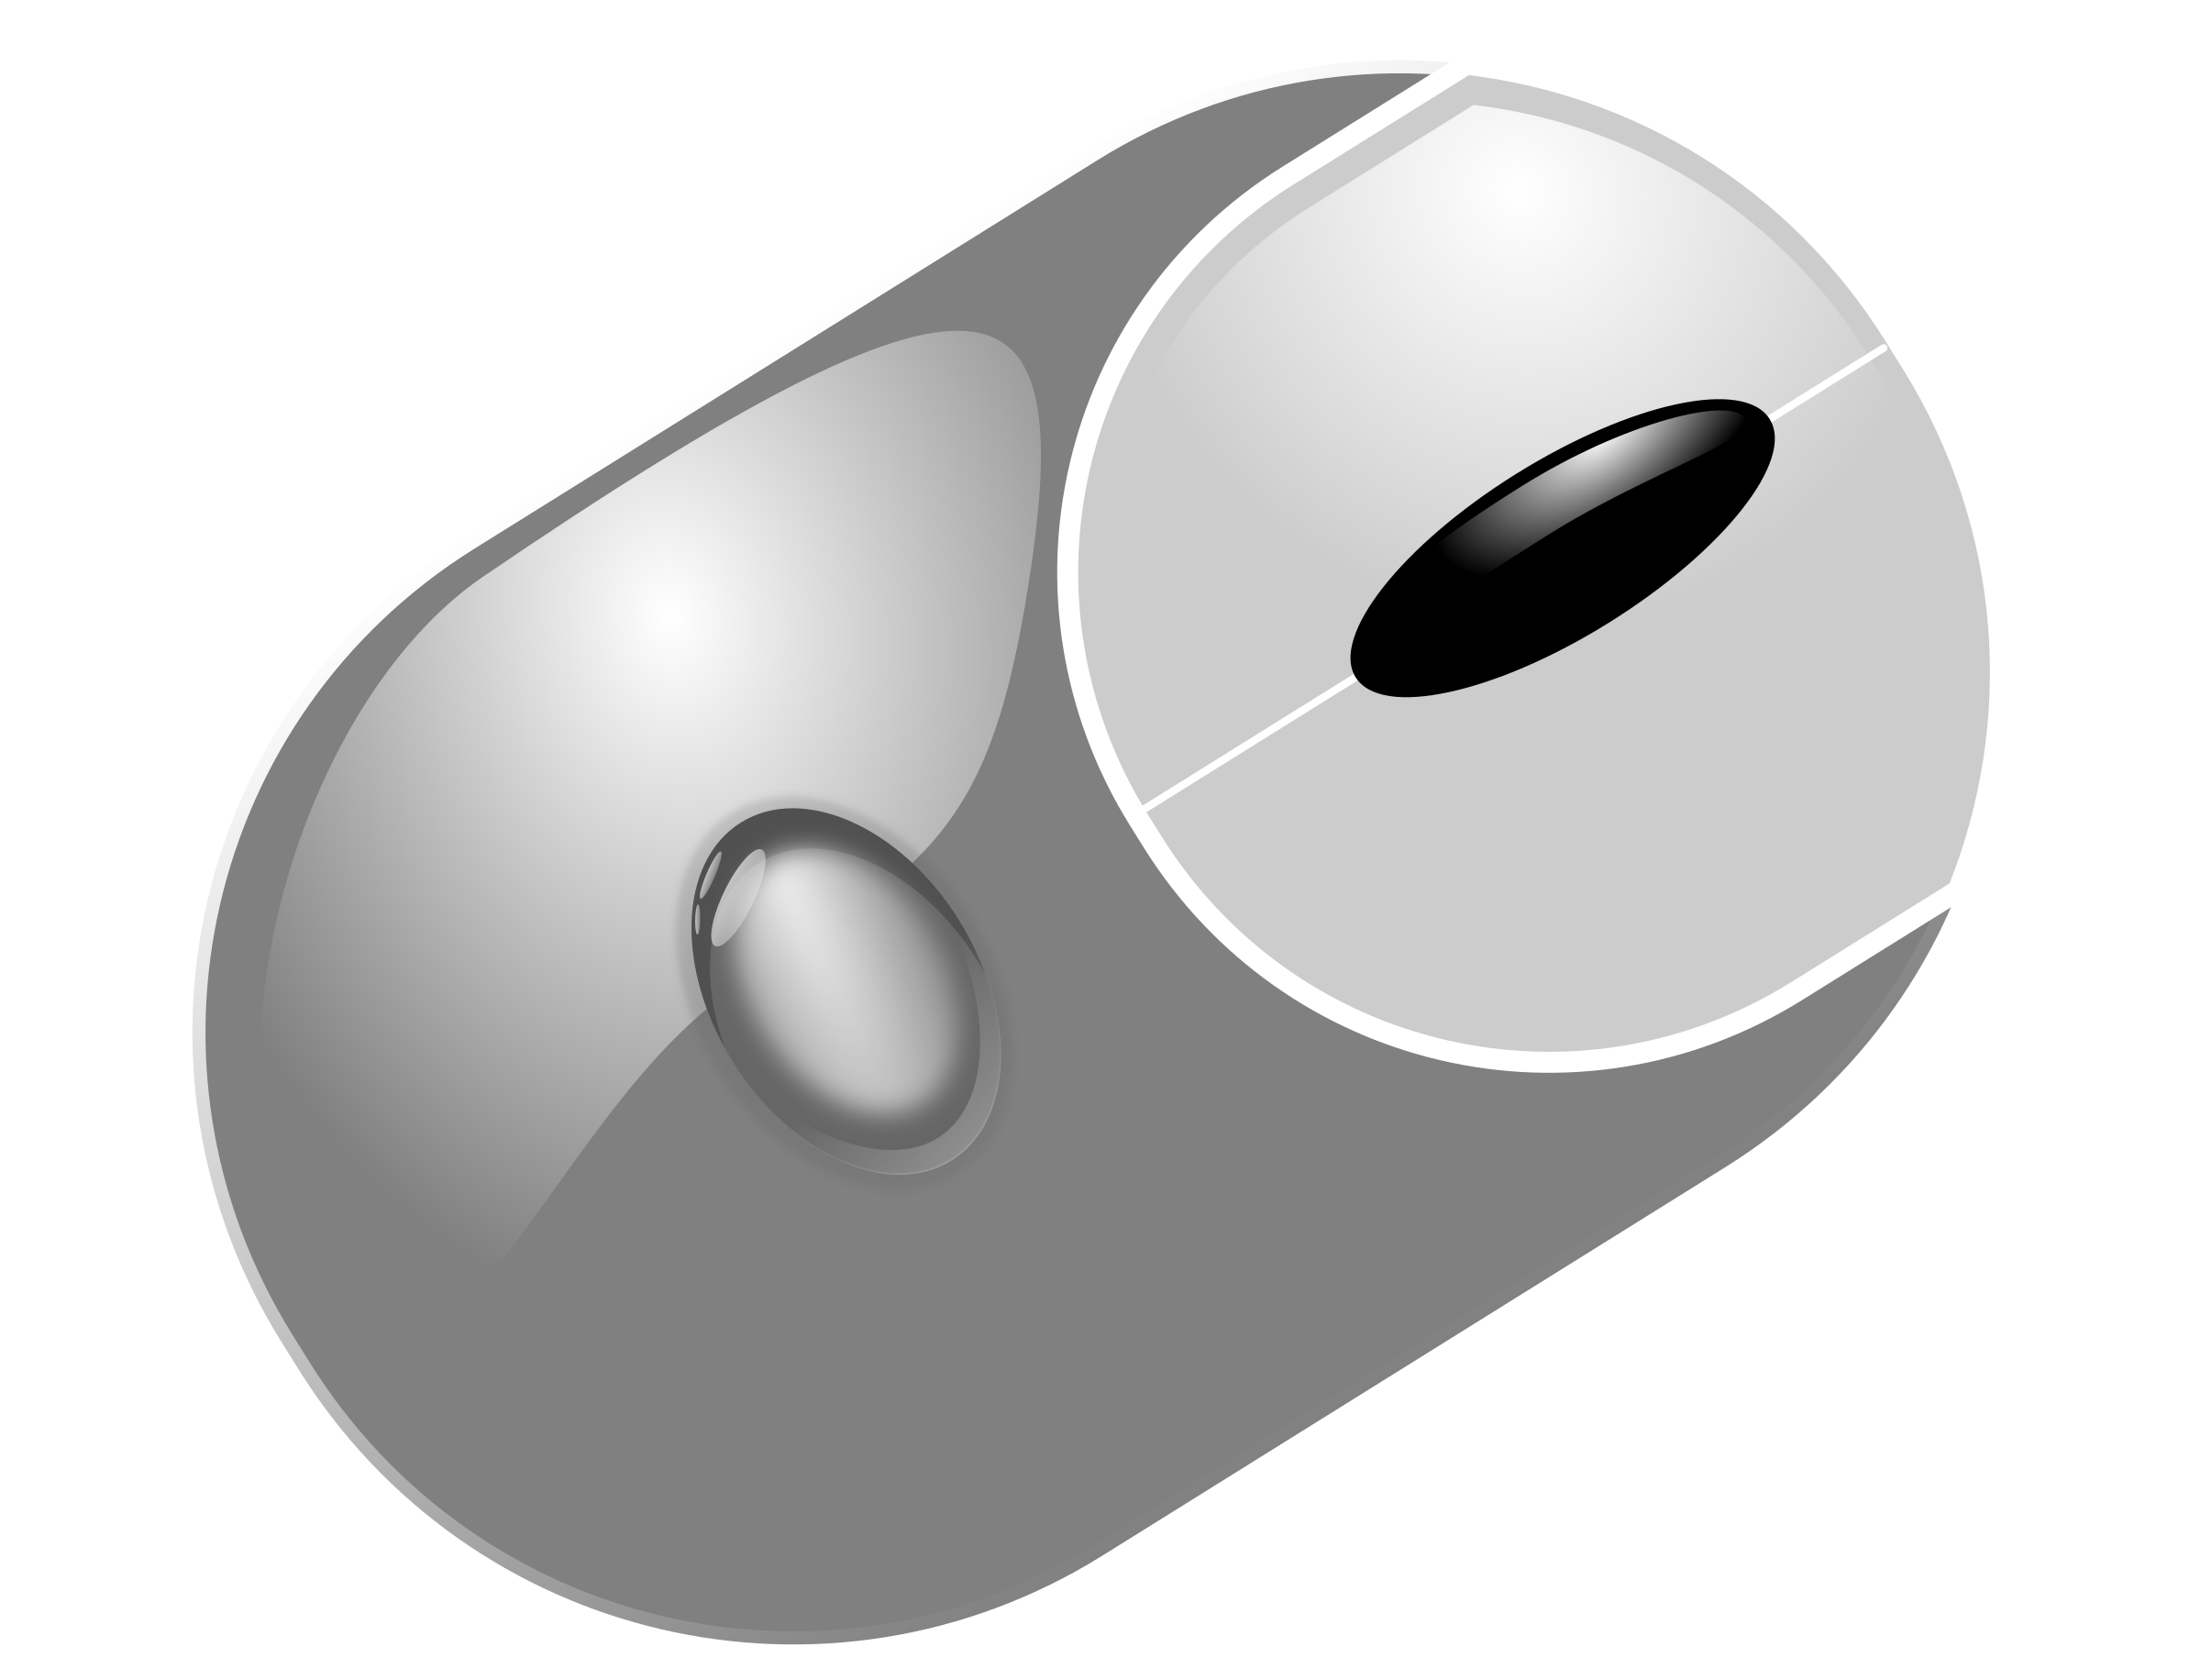 Mouse .png. Computer icons png free